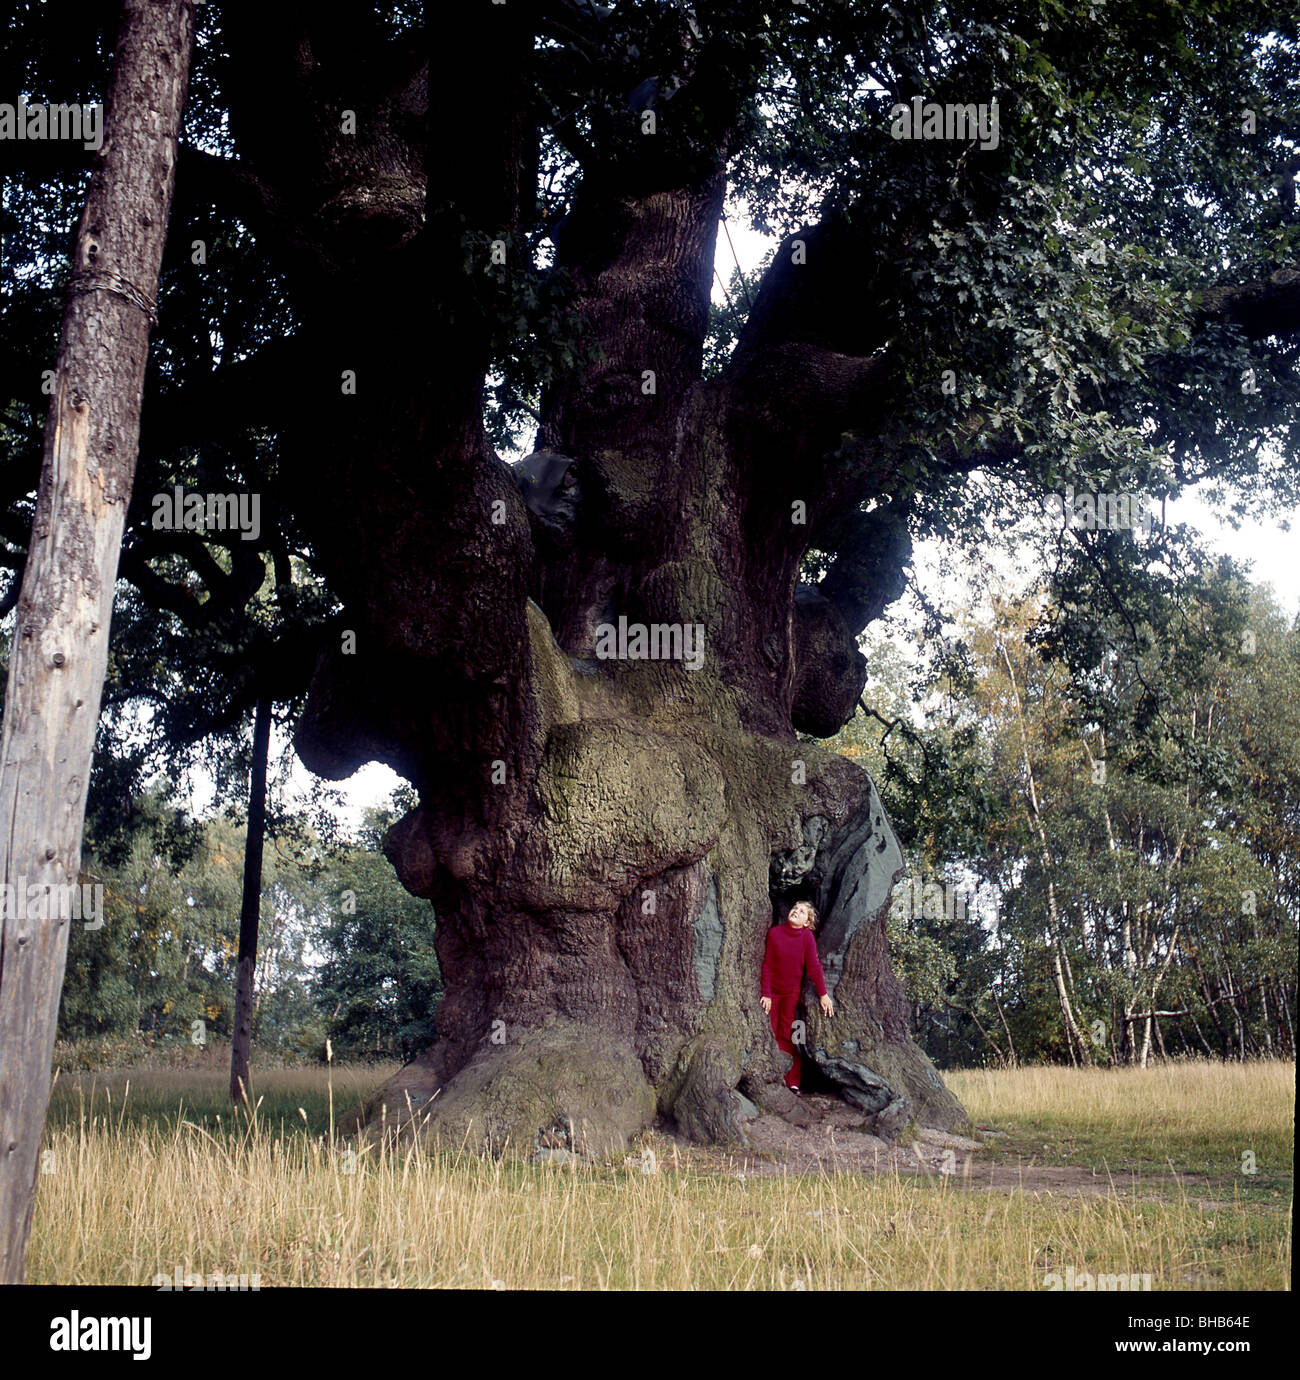 The Old Oak Tree of Sherwood Forest of Robin Hood fame, - Stock Image